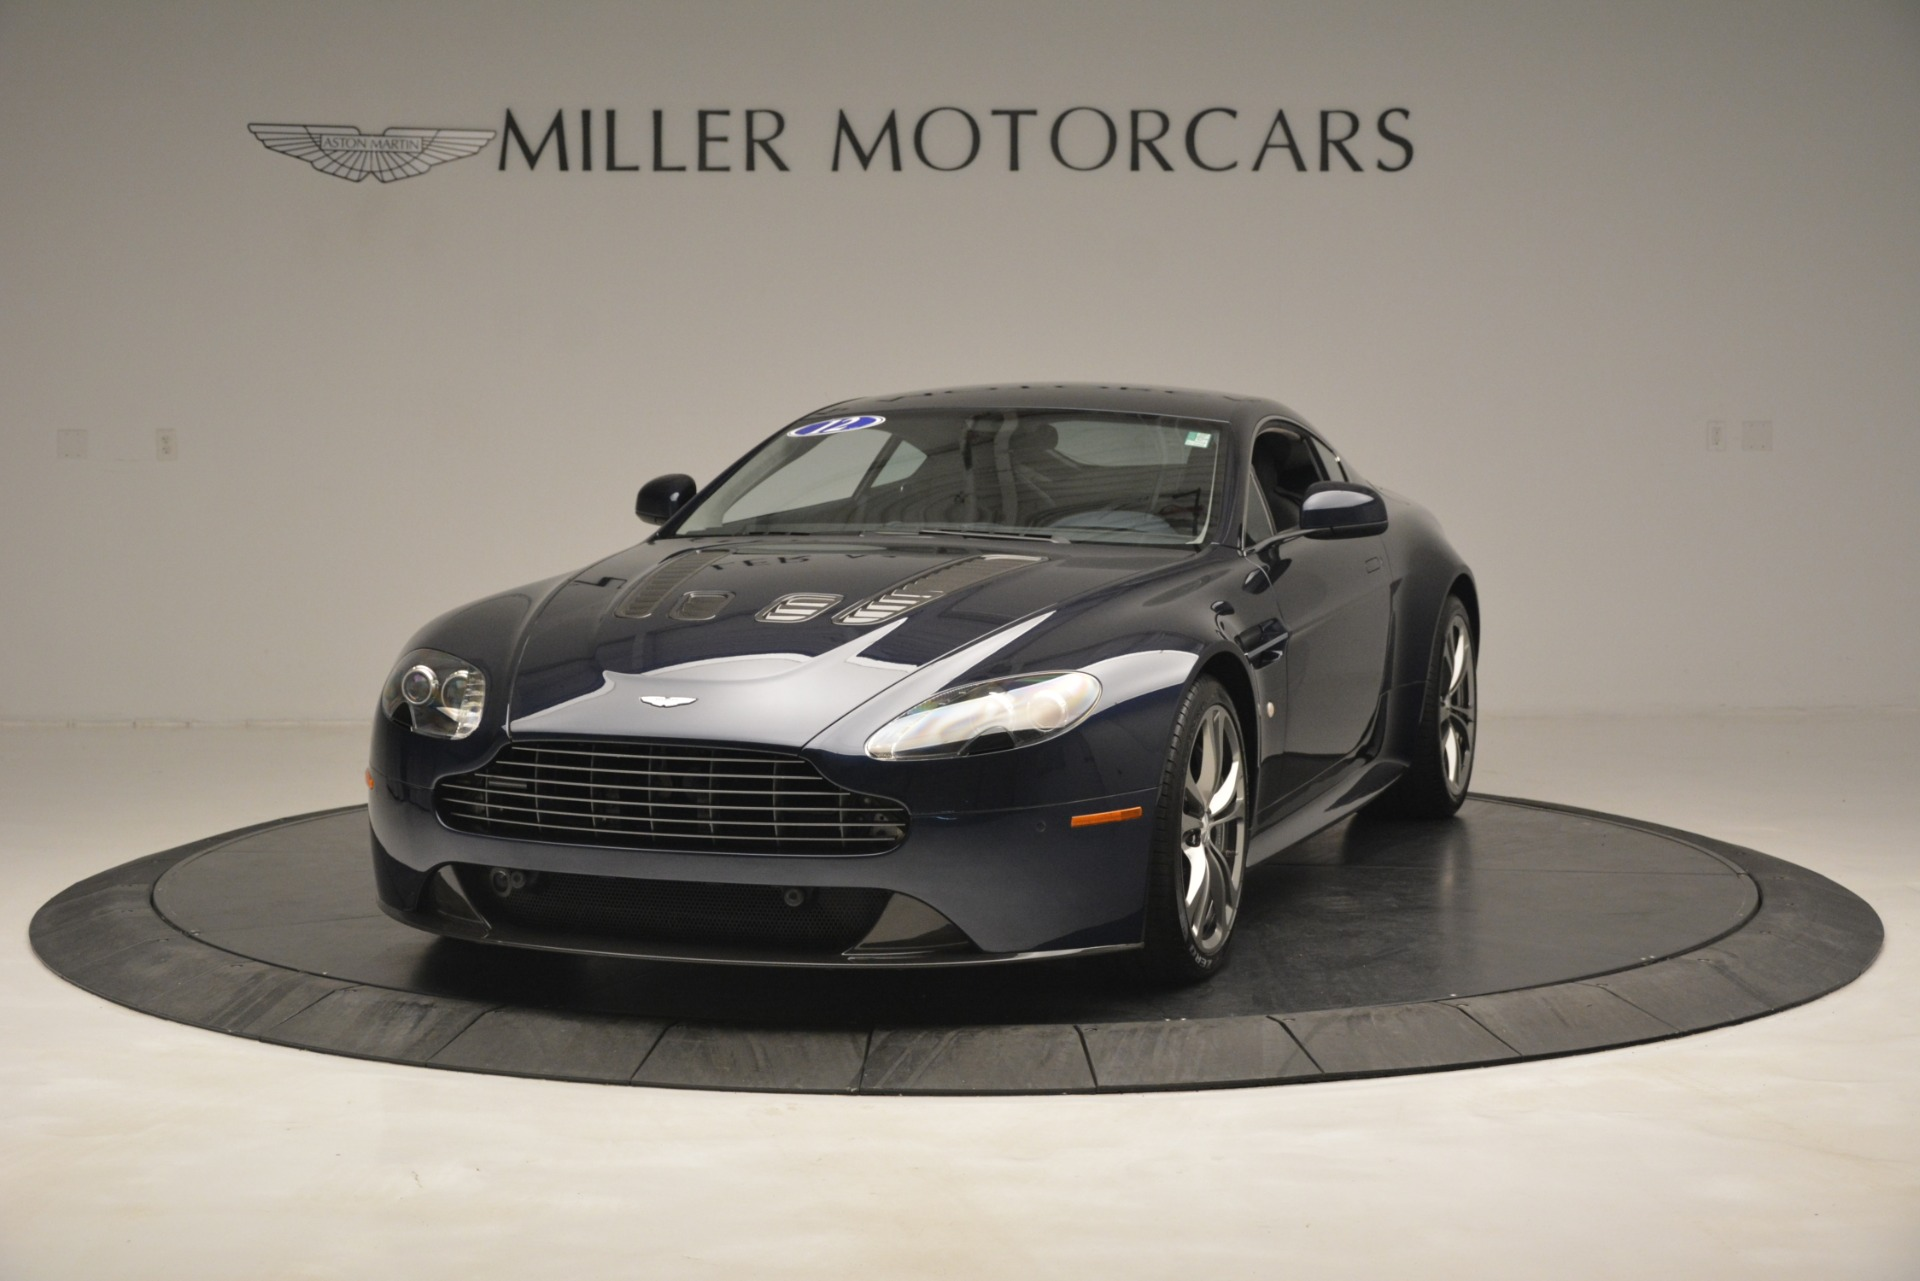 Used 2012 Aston Martin V12 Vantage for sale Sold at Pagani of Greenwich in Greenwich CT 06830 1